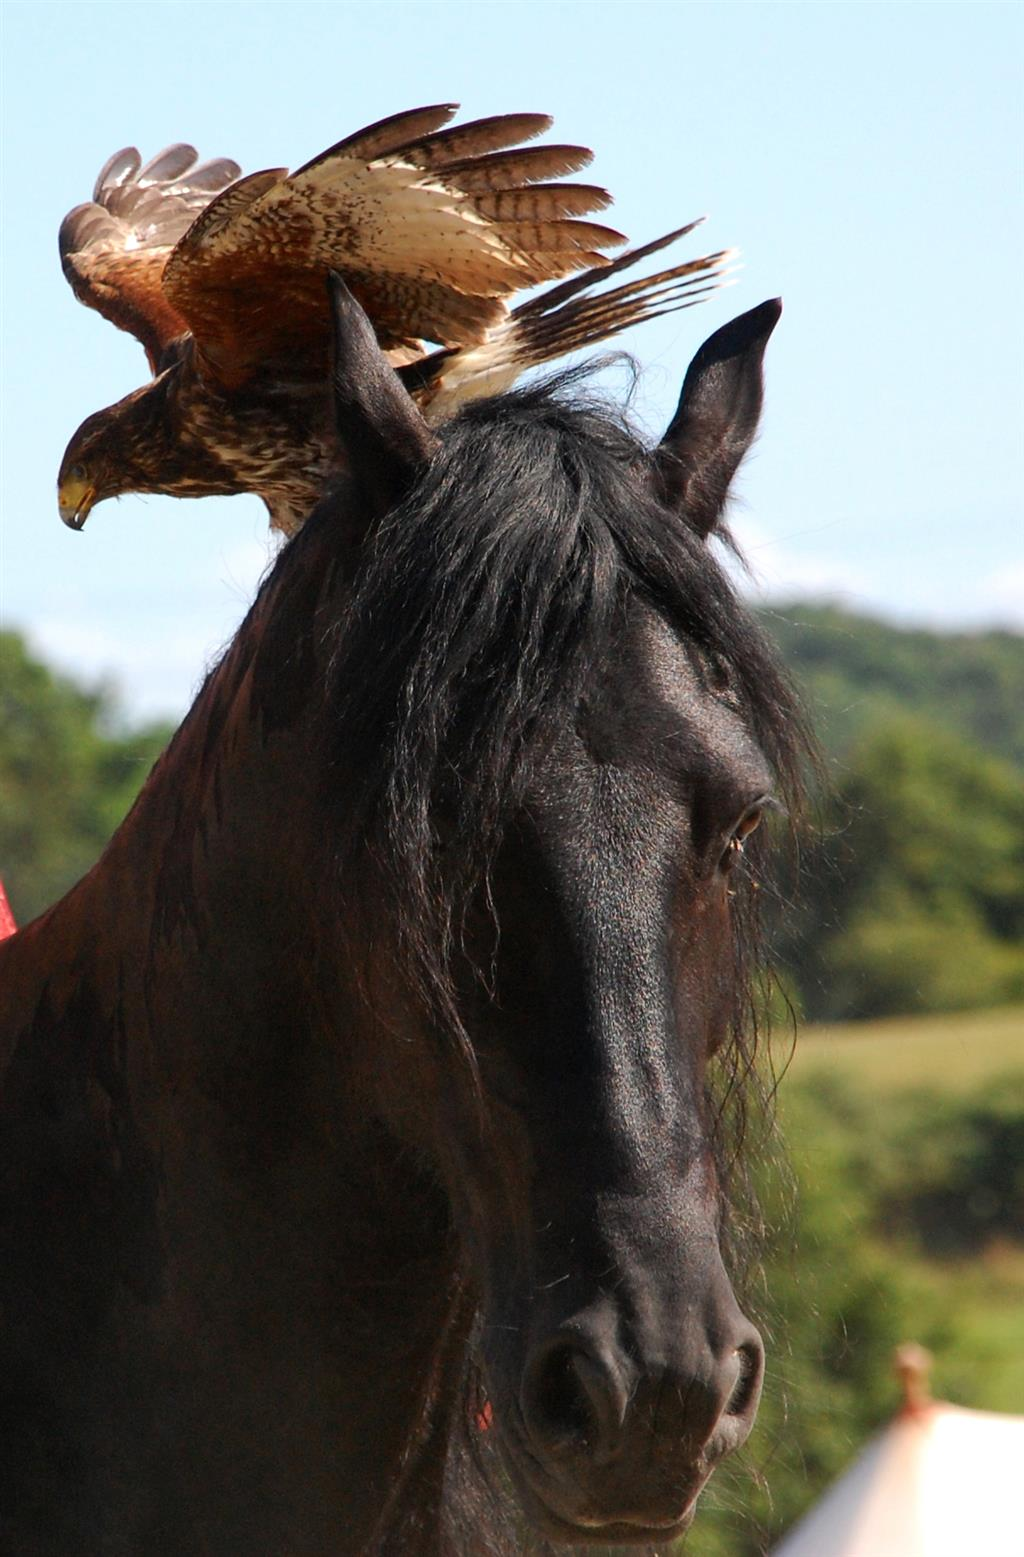 Hippogriffe Chevaux et rapaces (2) Ⓒ Hippogriffe - 2014